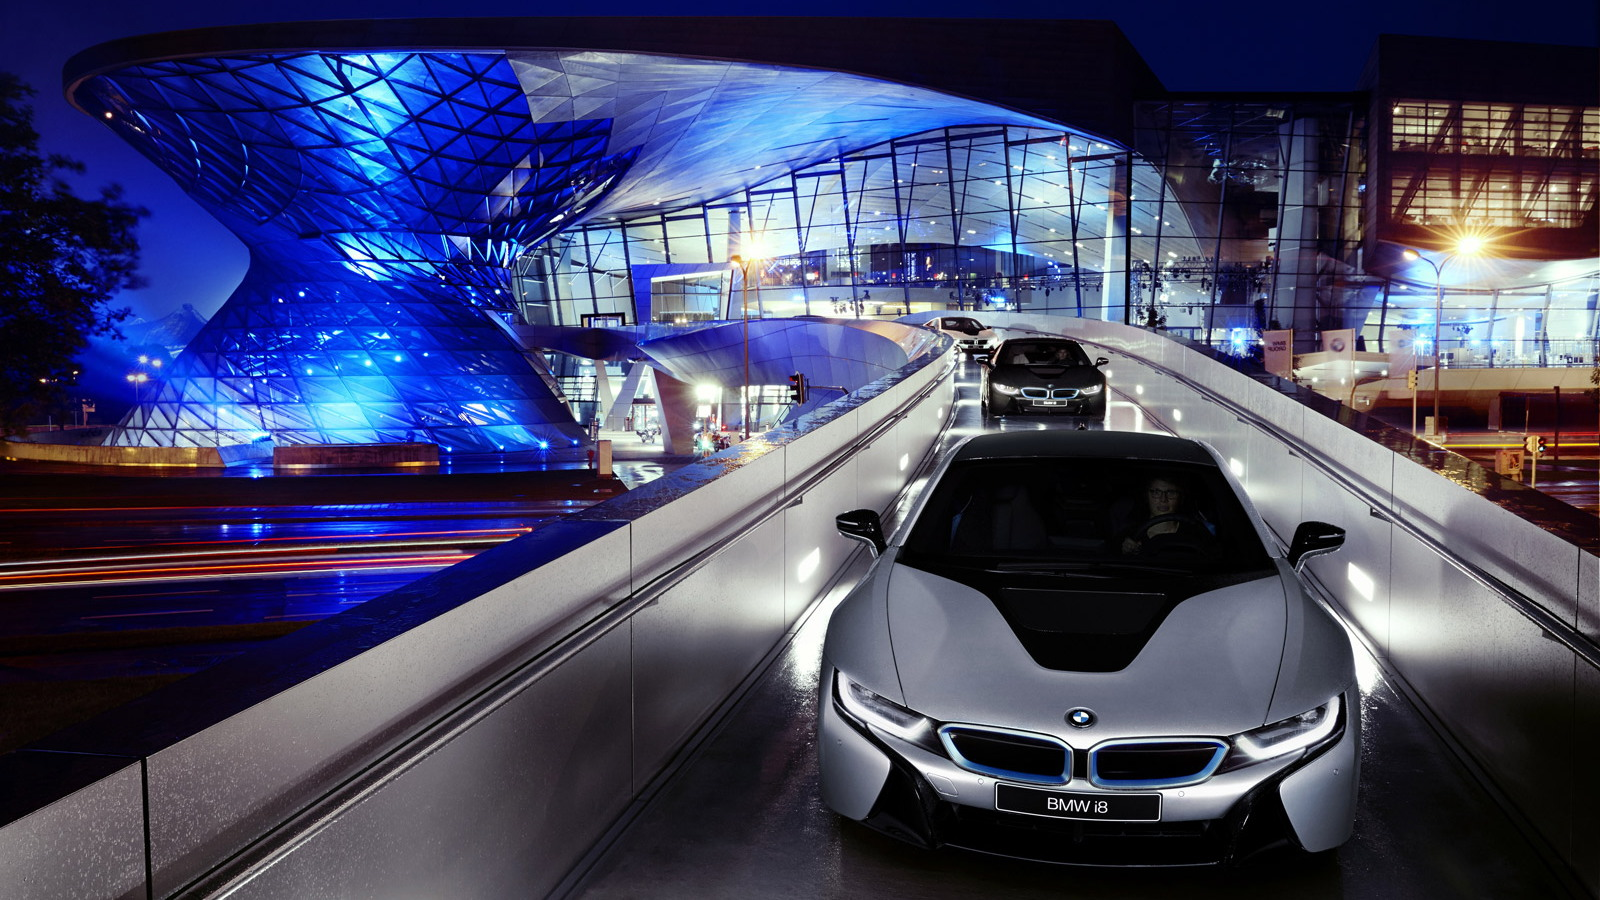 First BMW i8s delivered to customers